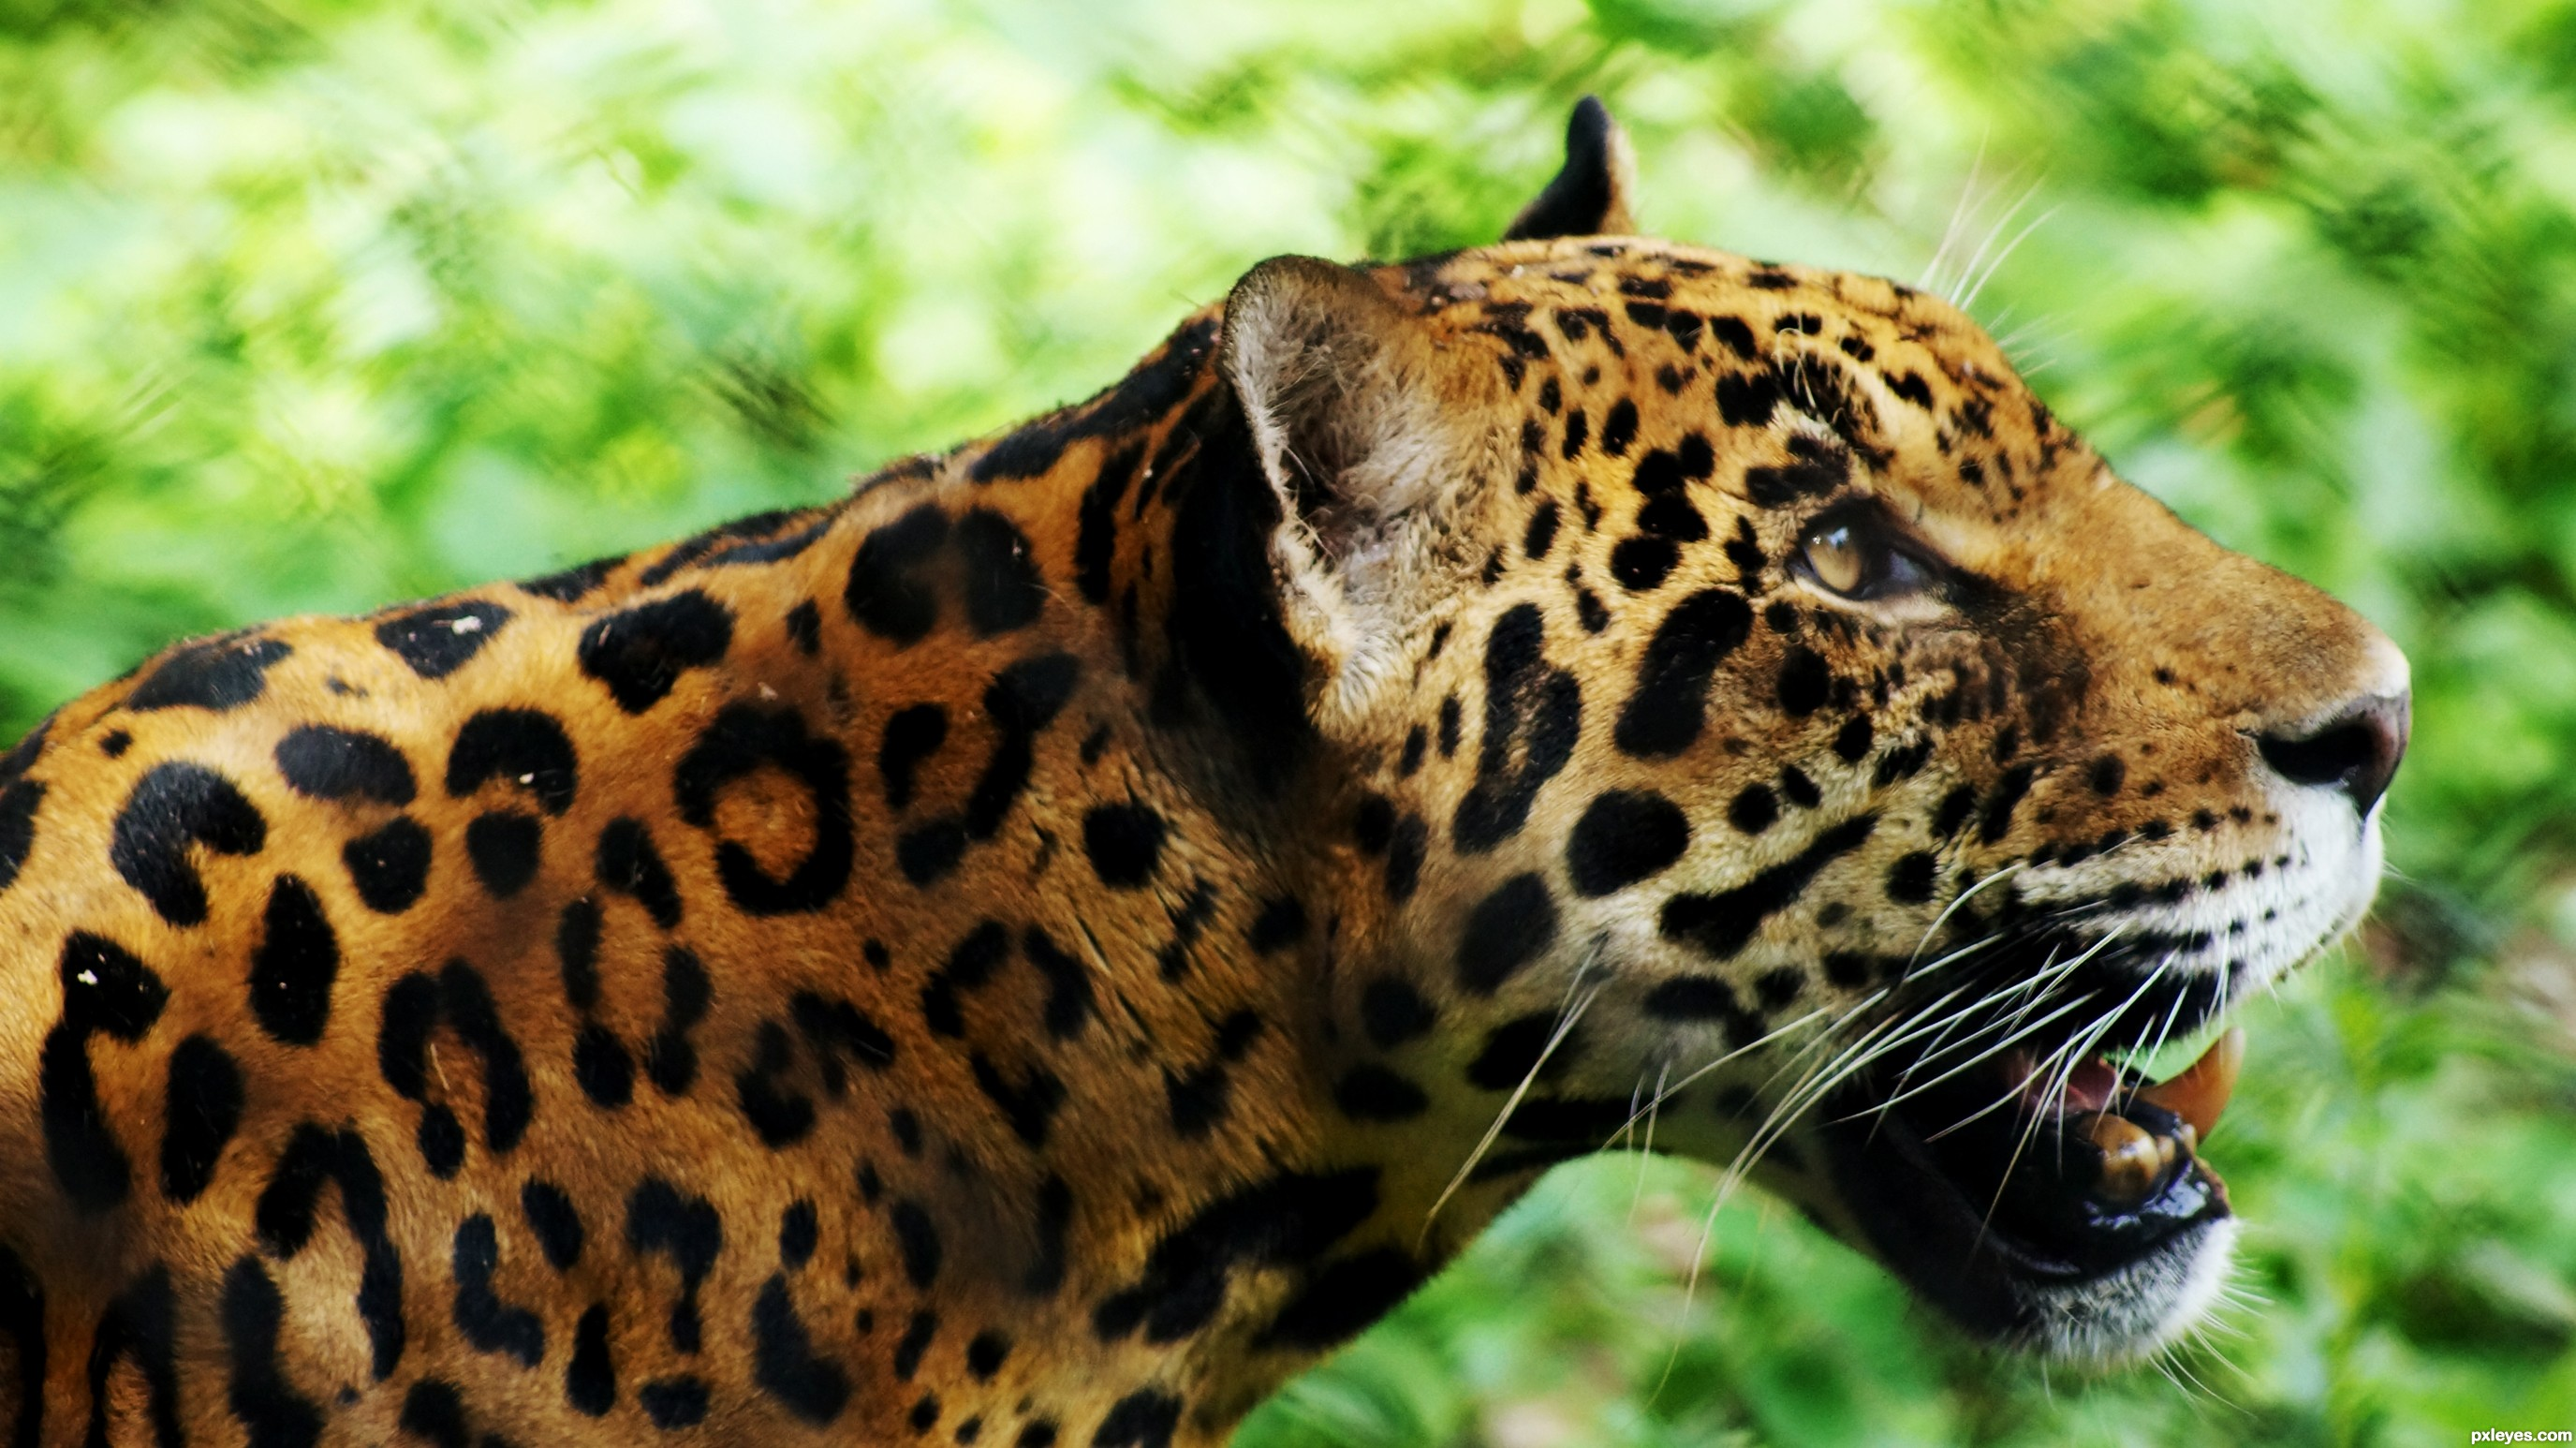 Leopard Photography Contest Pictures - Image Page 1 ...